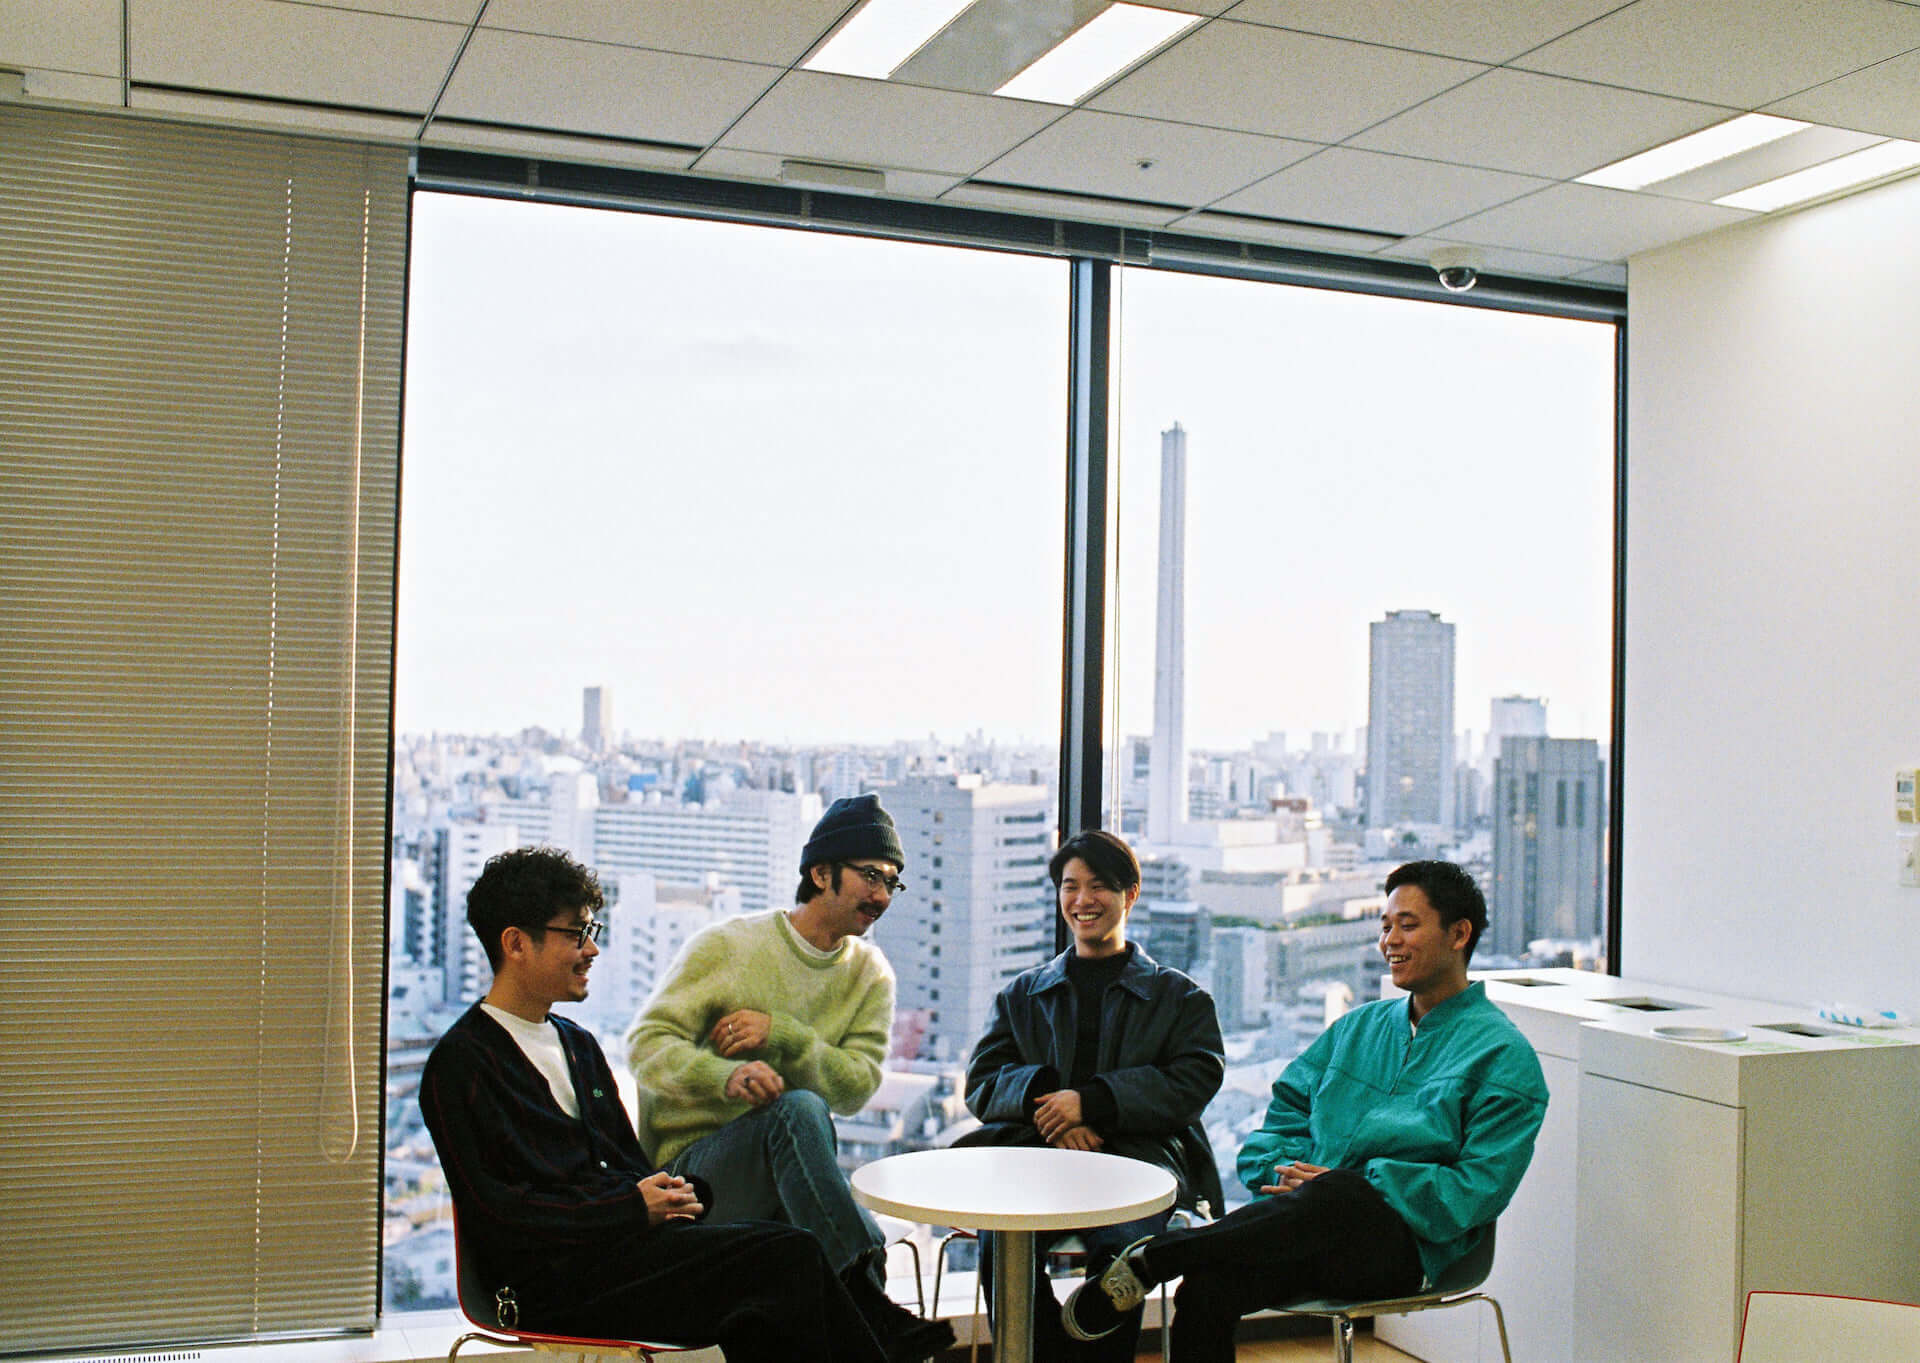 Yogee New Wavesが『to the MOON e.p.』に込めた想いと国境を超えた先にあるもの interview-yogee-21-1920x1363